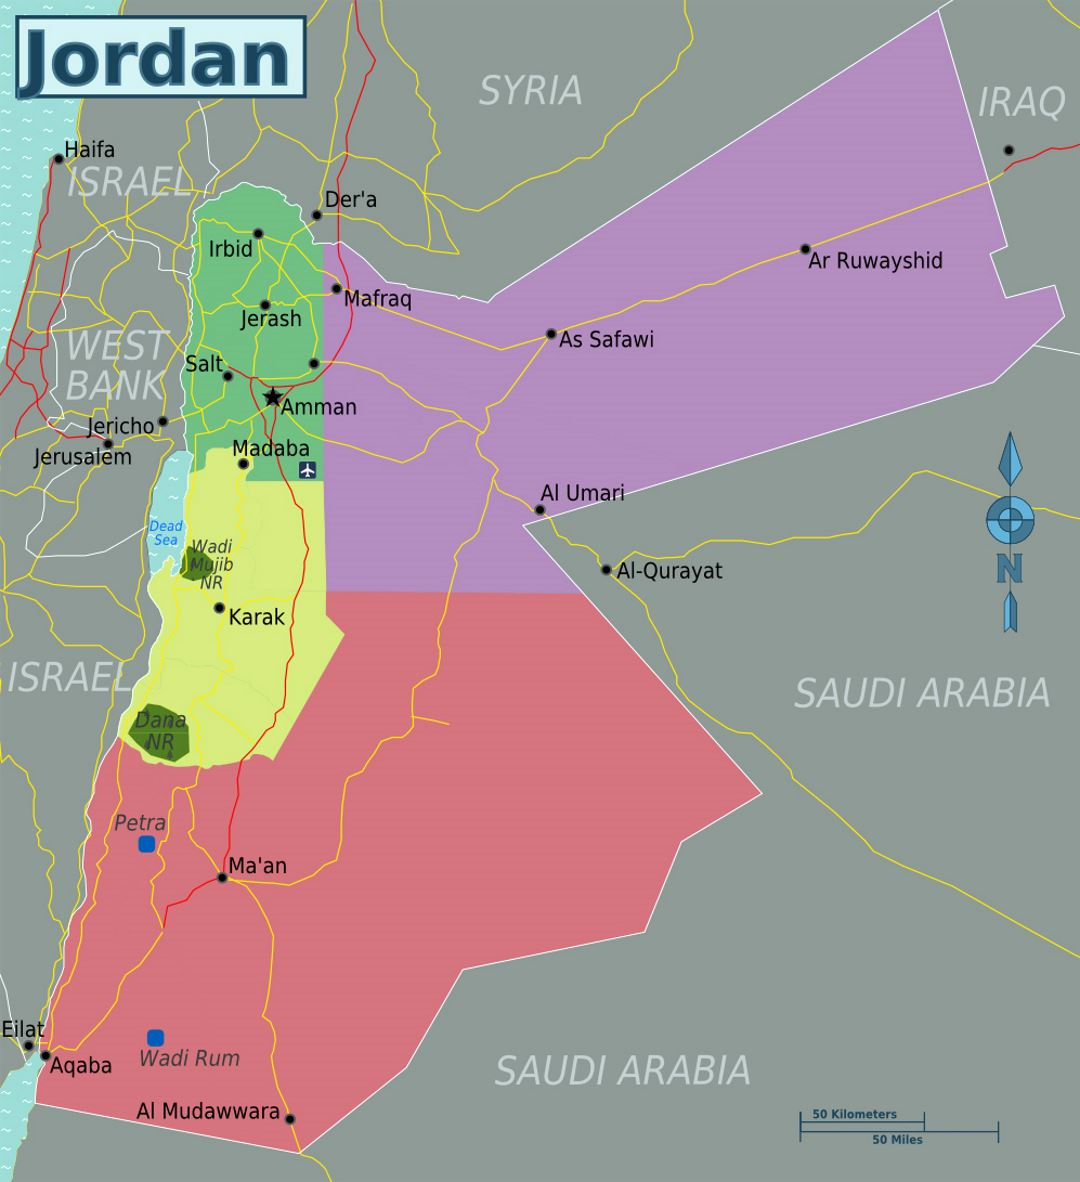 Detailed regions map of Jordan